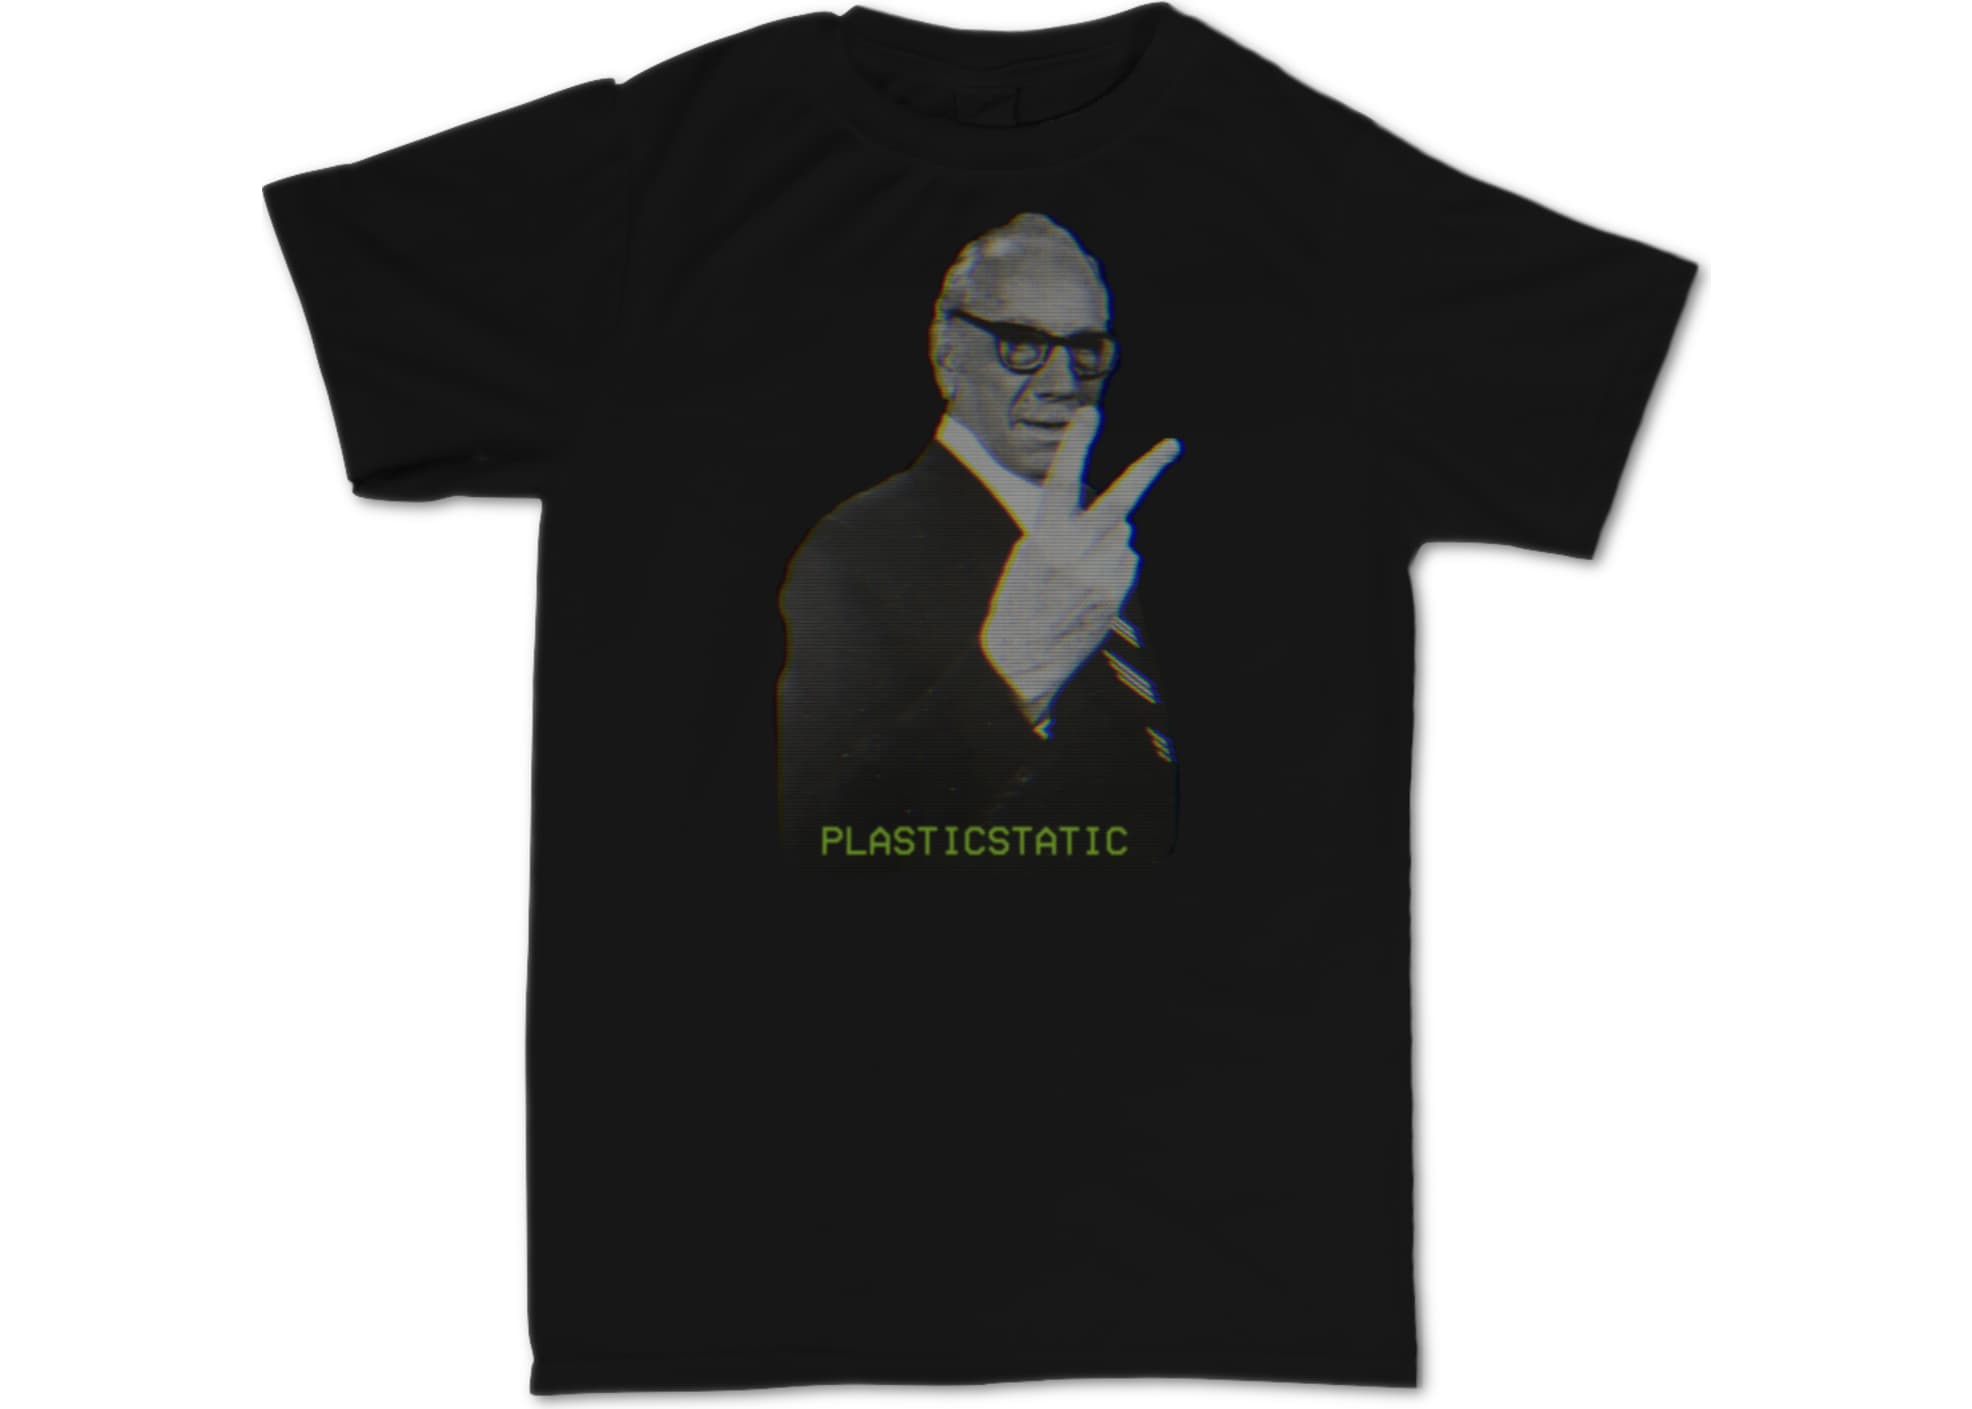 Plasticstatic ps melvyn 1596333669